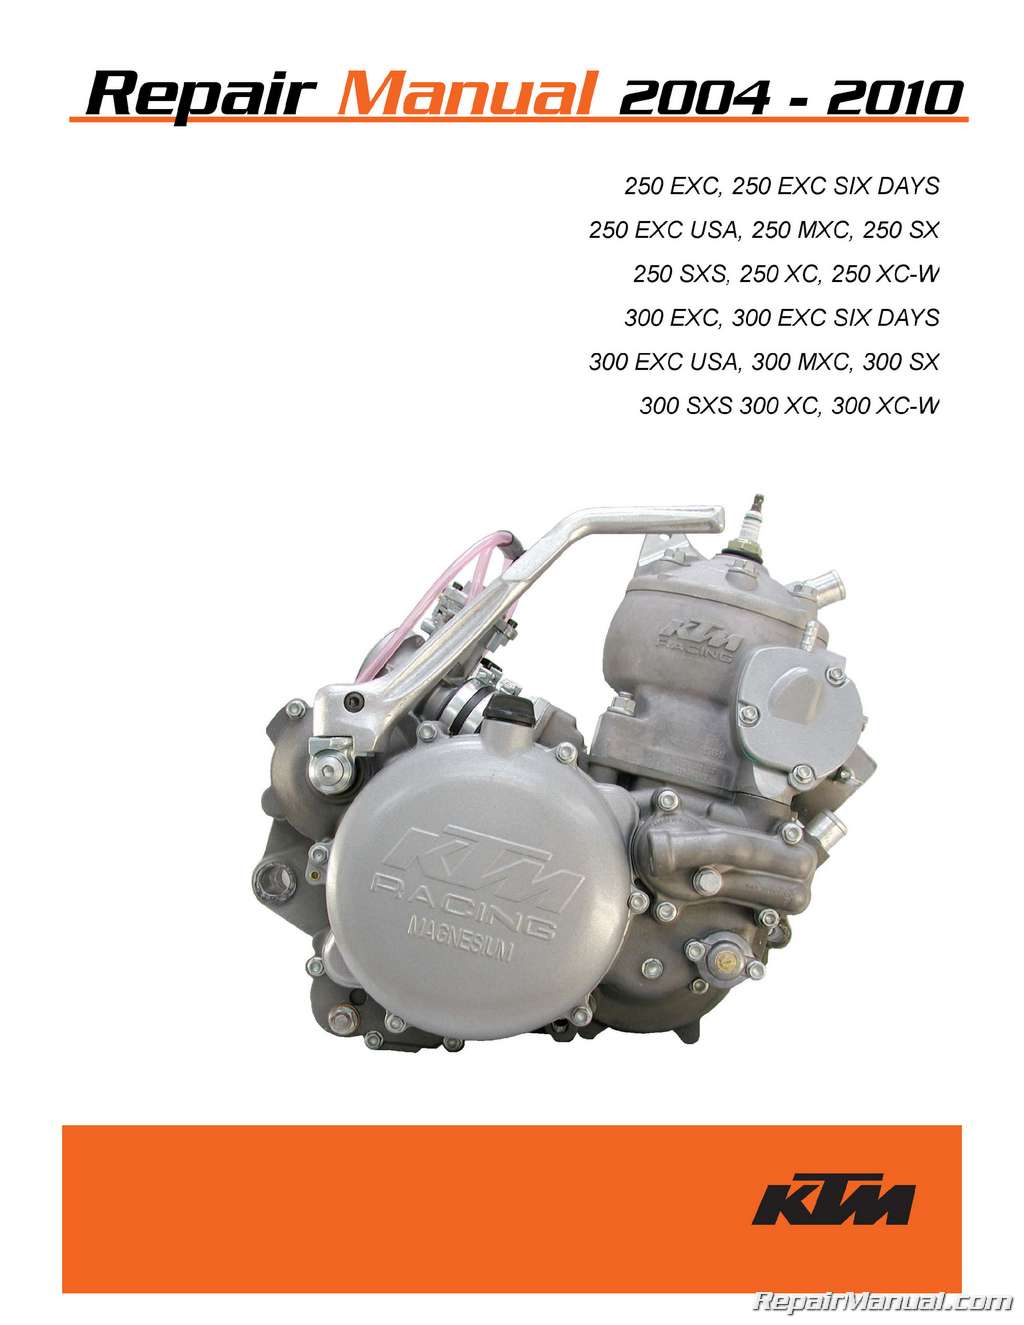 3206088 E ktm motorcycle manuals repair manuals online 1999 ktm 300 exc wiring diagram at gsmportal.co